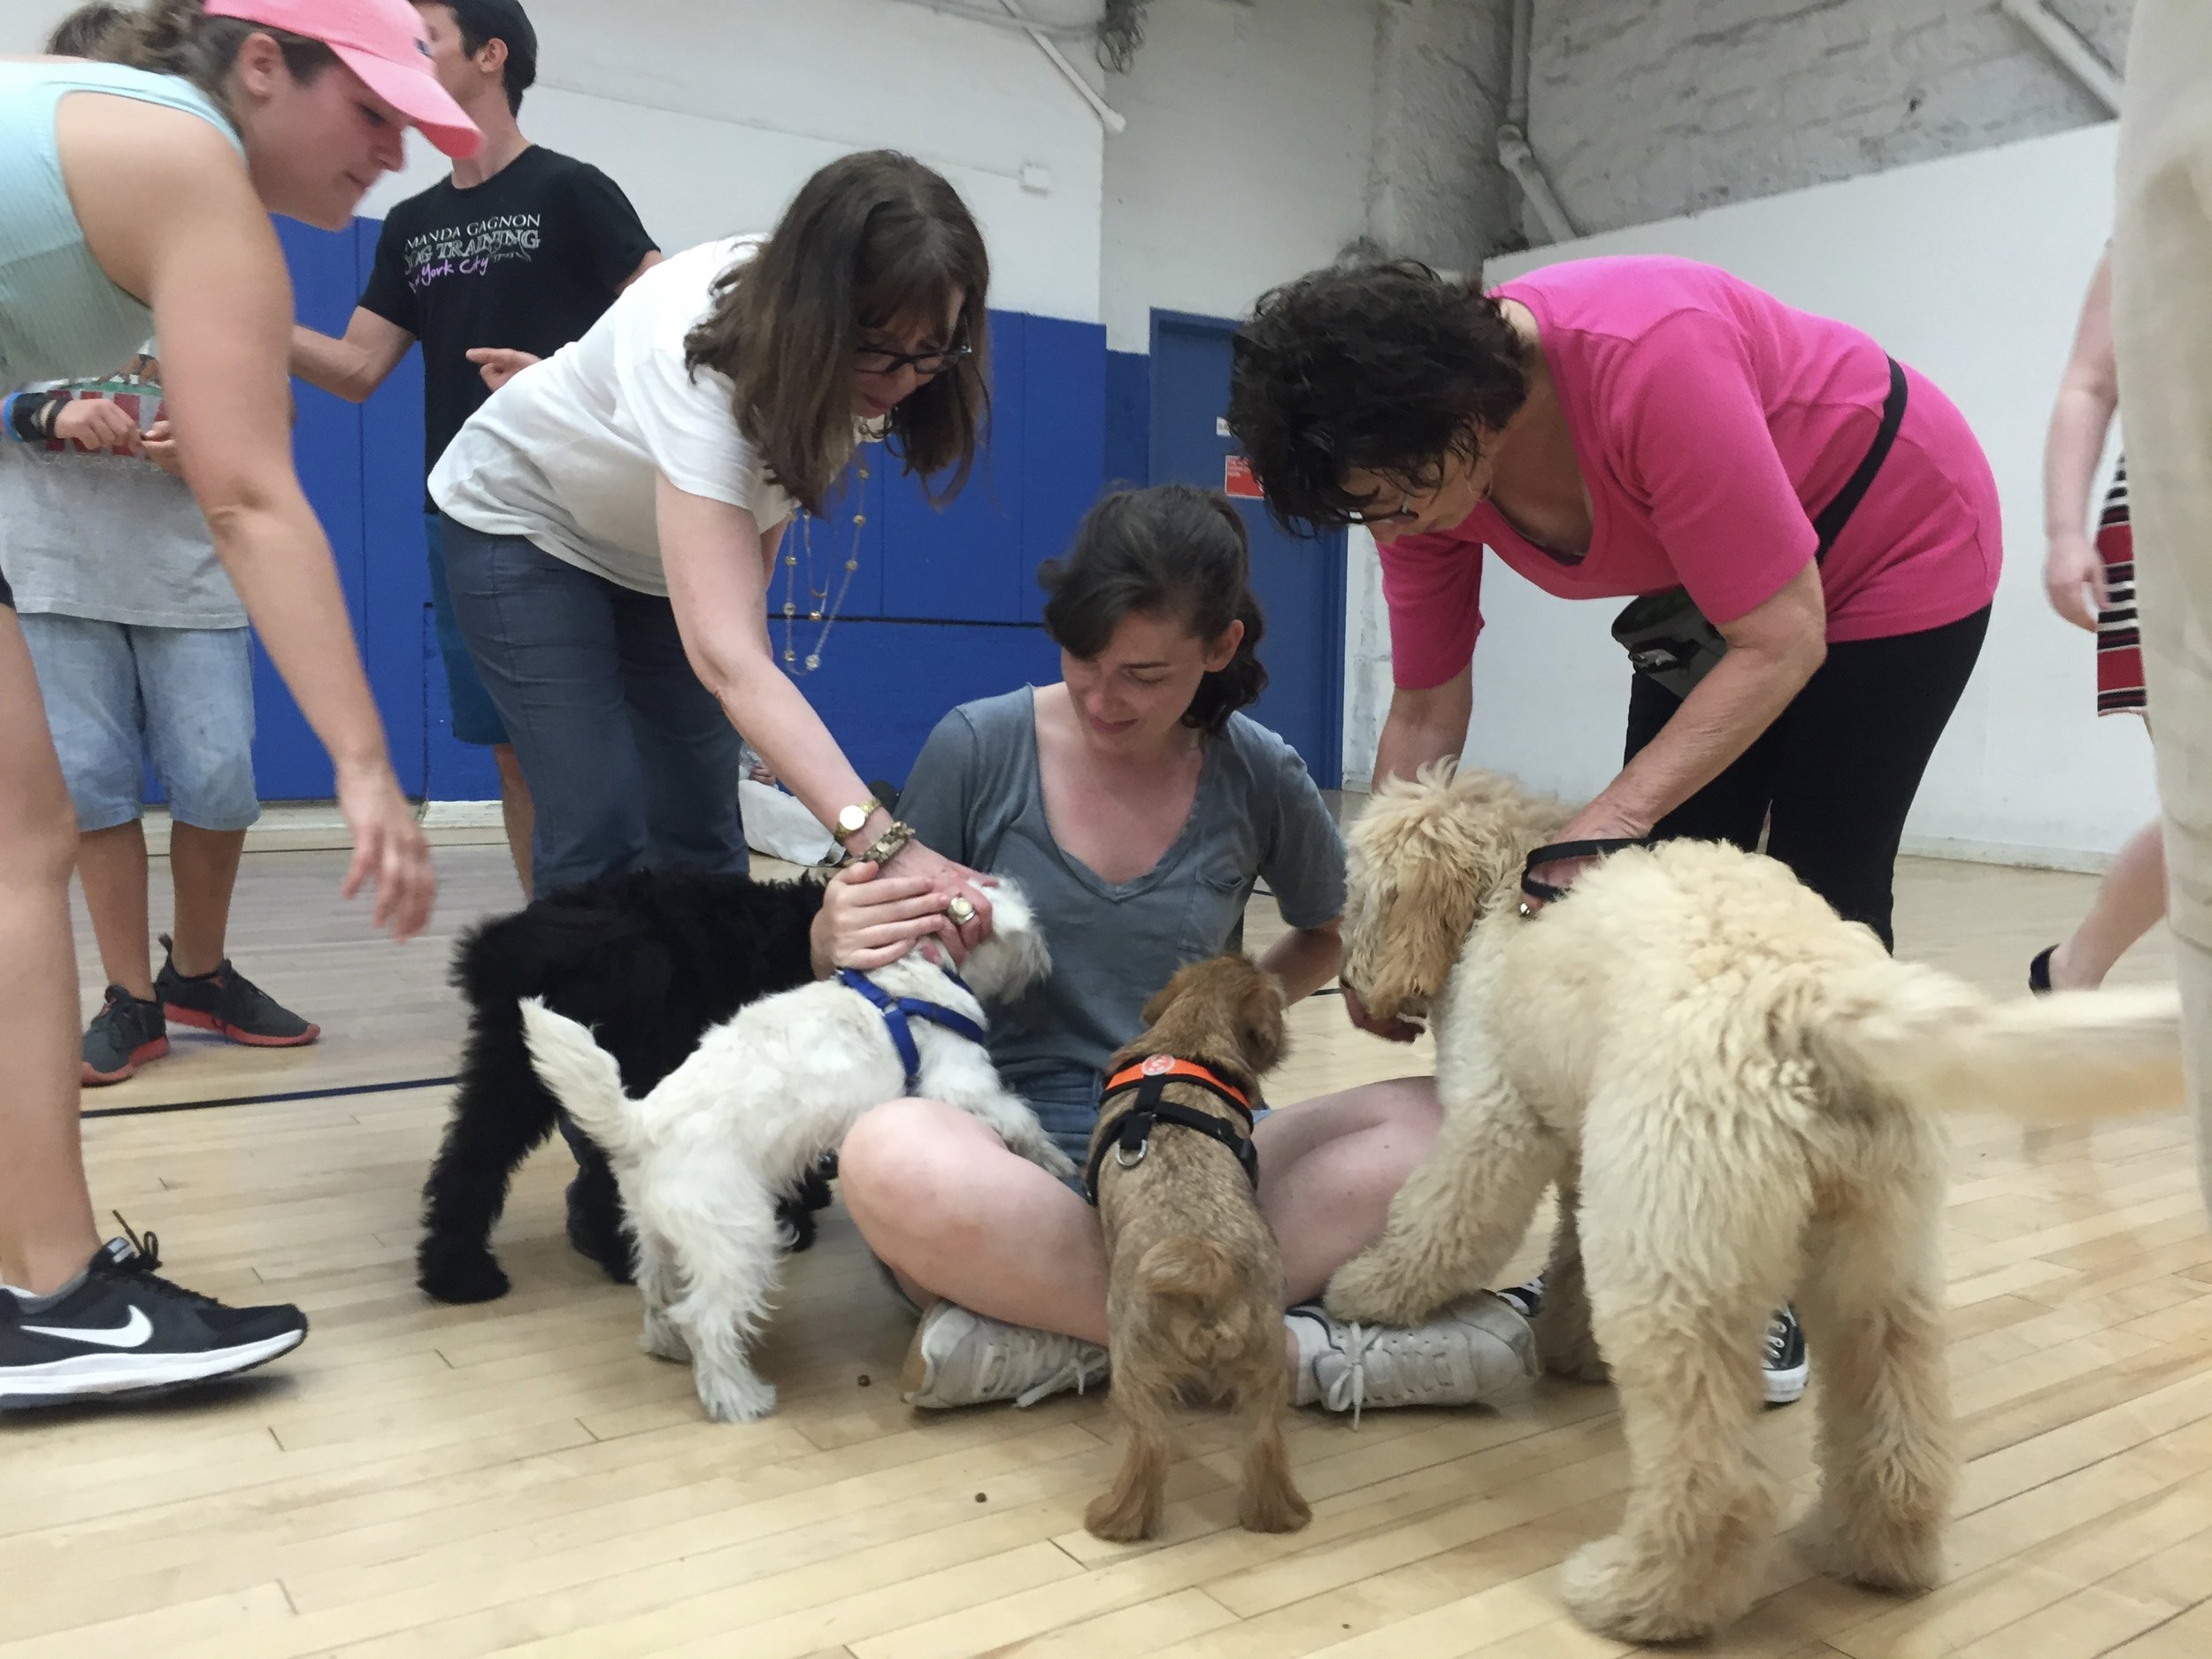 LOCATIONS & SCHEDULE: - Amanda Gagnon Dog Training76 West 85th Street, Unit A, off Columbus AveMondays & Tuesdays at 6pm. Wednesdays & Thursdays at 6:30pm. Saturdays & Sundays at 10am *Requires pre registration*Dog Days of New York2581 Broadway at West 97th StreetSundays at 10am. Simply show up!The Mutt Hutt238 West 72nd Street. Off of BroadwaySaturdays at 10am starting on 8/24. *Requires pre registration*